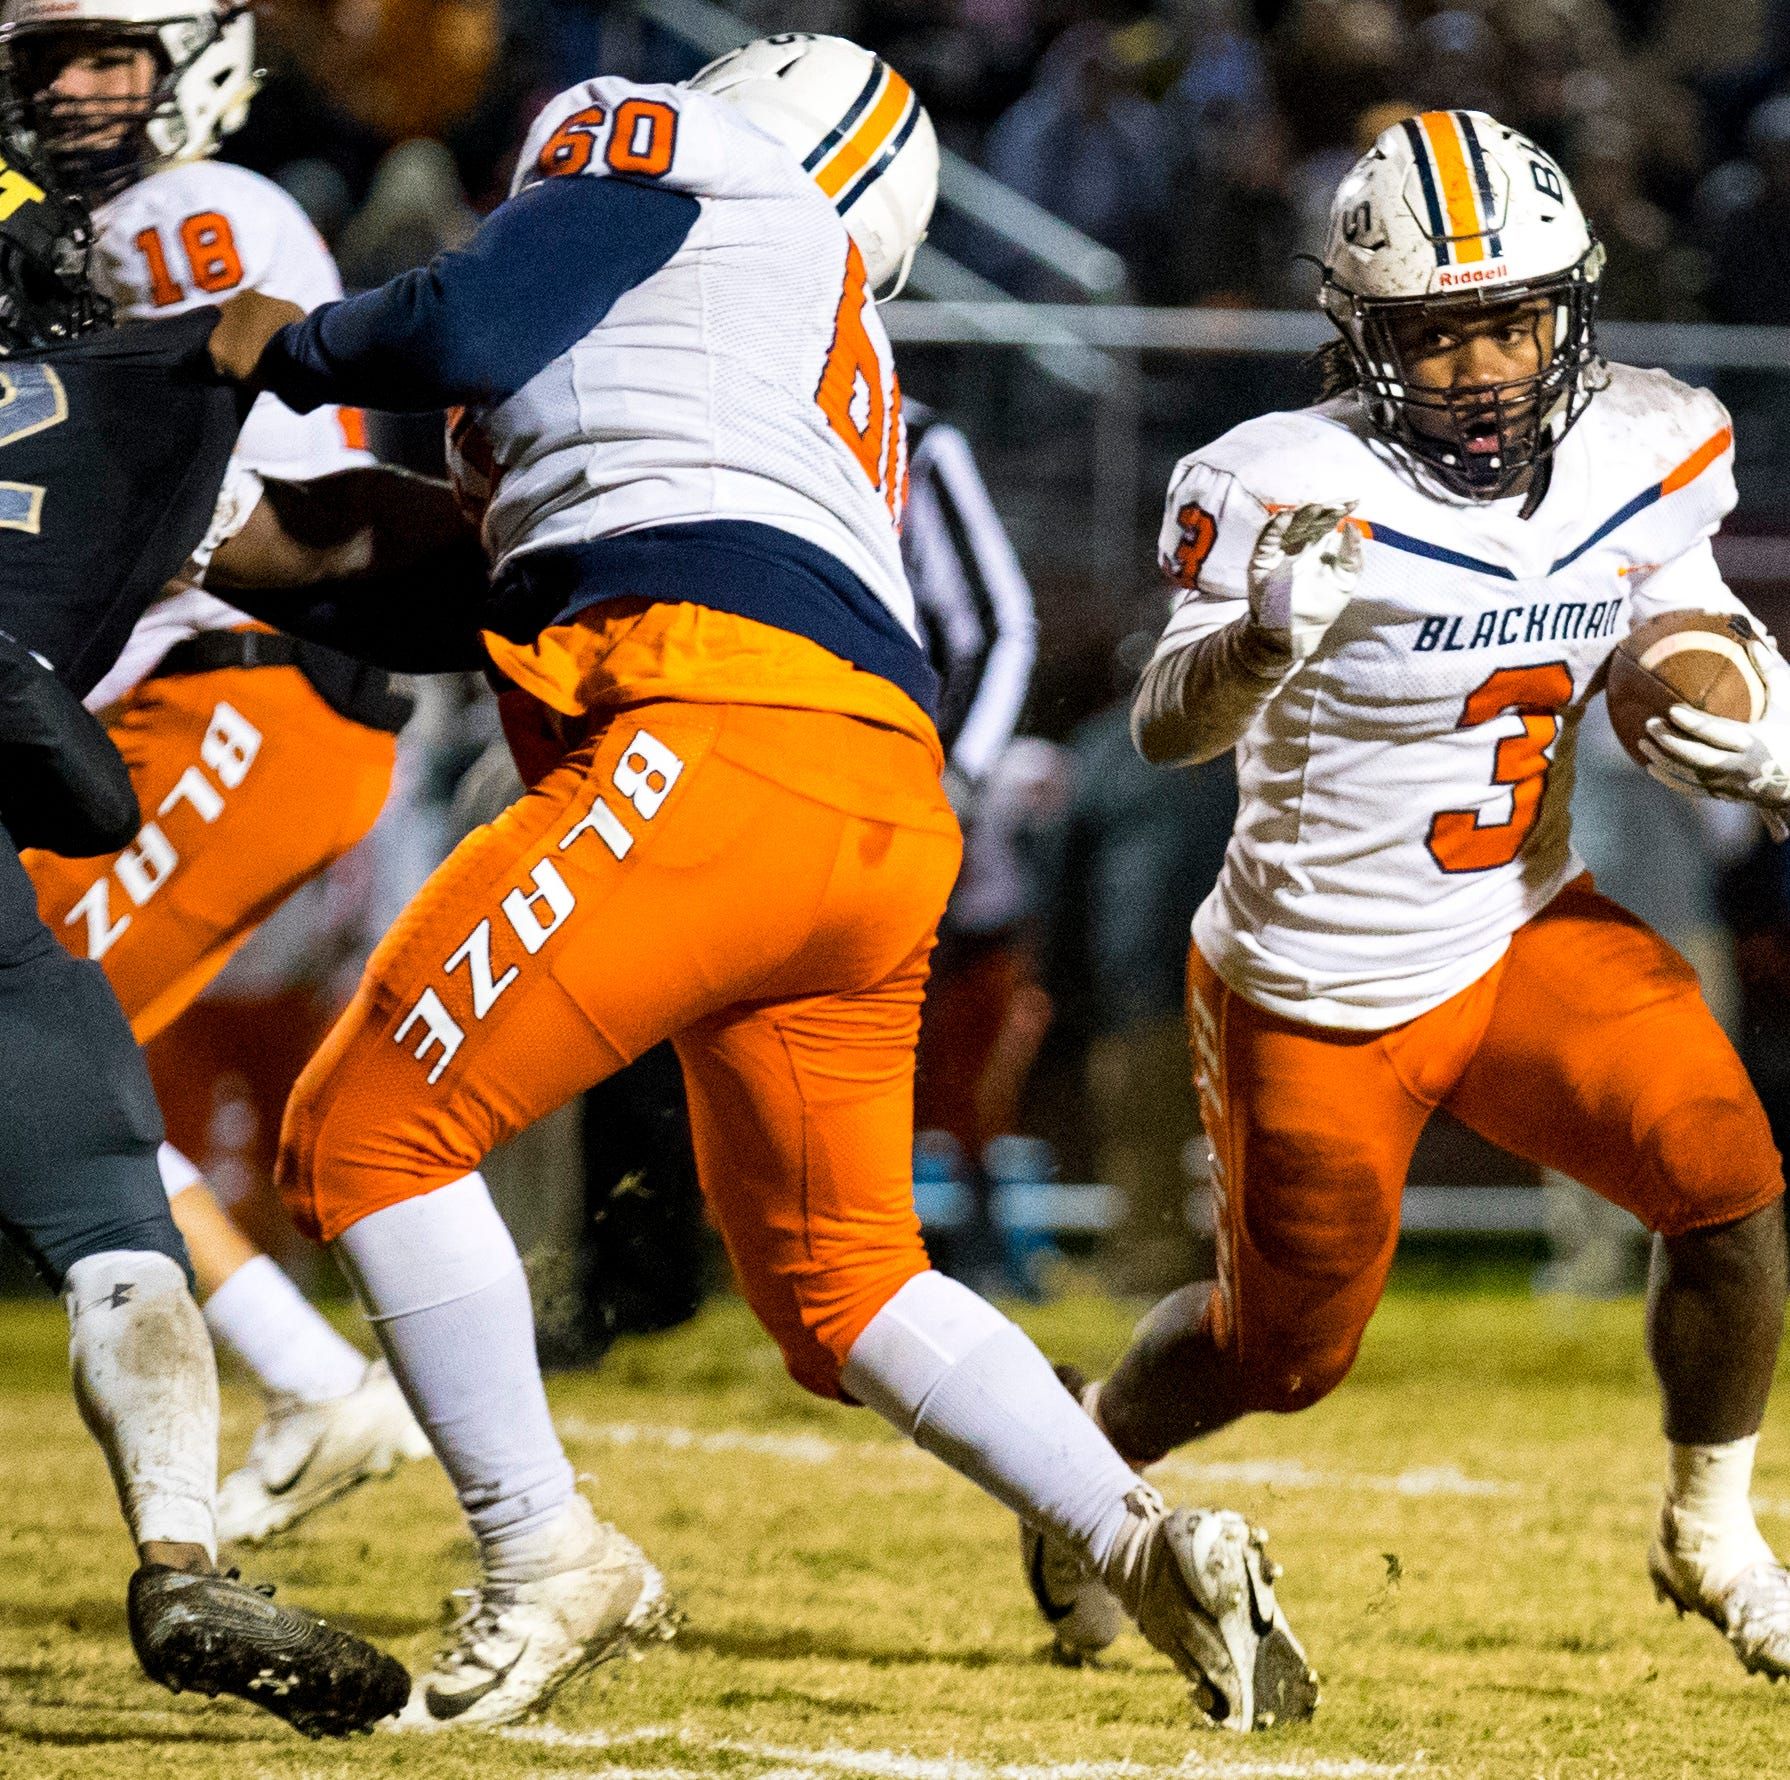 Blackman's Ta'Micus Napier (3) runs the ball during Mt. Juliet's game against Blackman at Mt. Juliet High School in Mt. Juliet on Friday, Nov. 9, 2018.